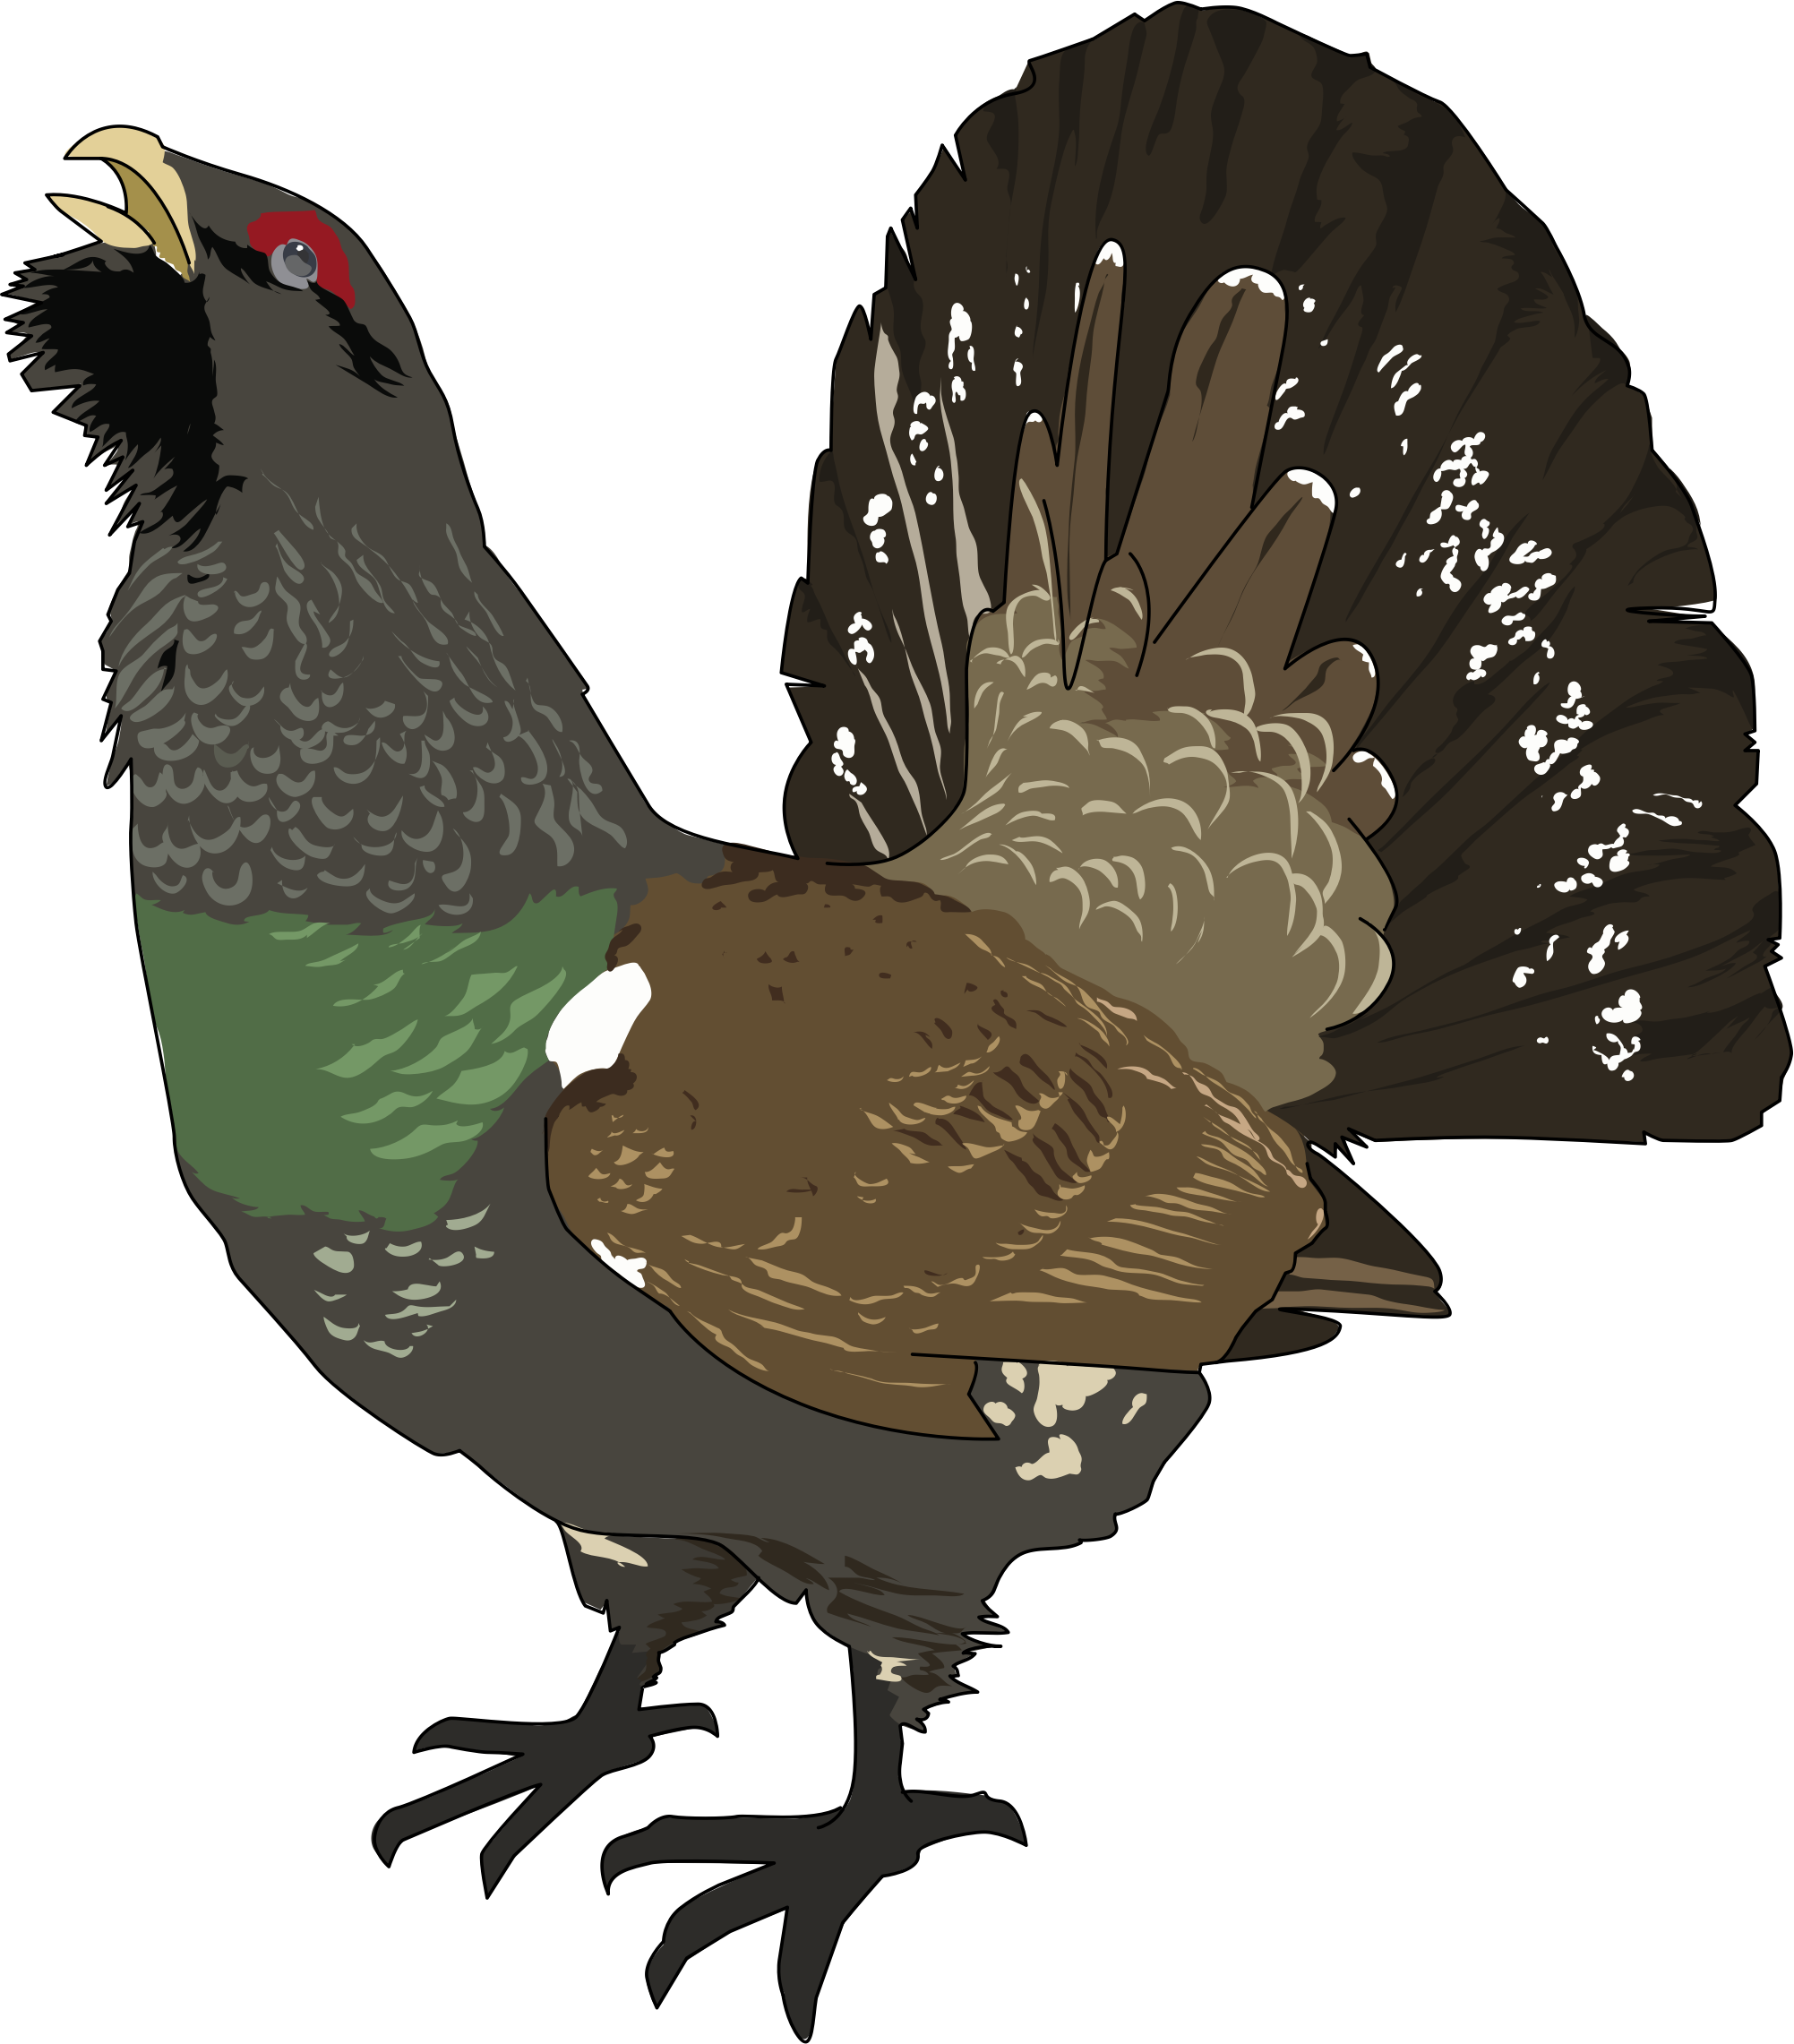 clipart grand tetra coq de bruyere grouse. Black Bedroom Furniture Sets. Home Design Ideas